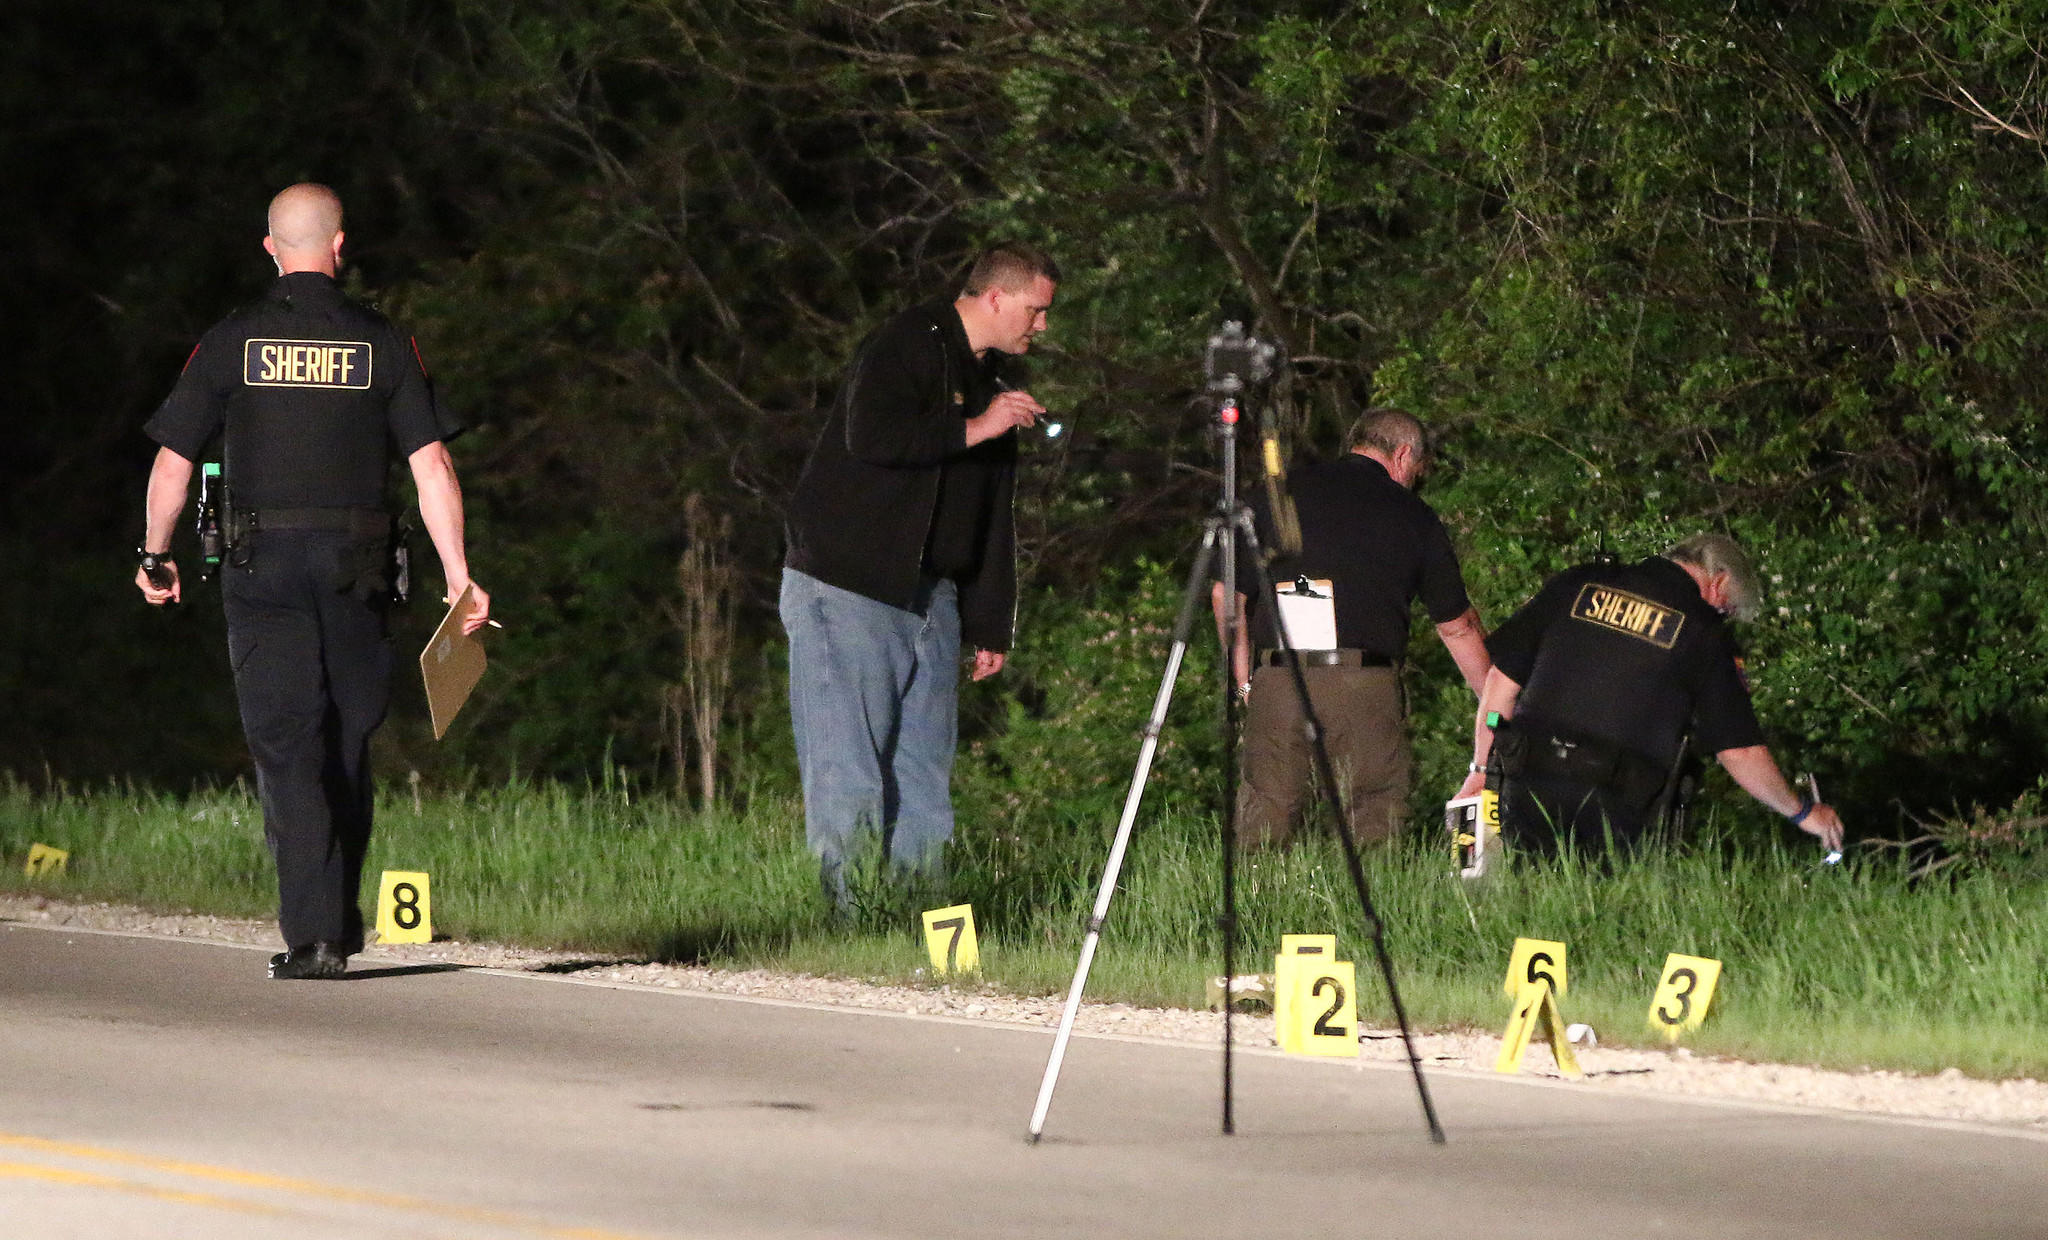 Authorities investigate a fatal pedestrian hit-and-run accident in Mundelein late on May 23.